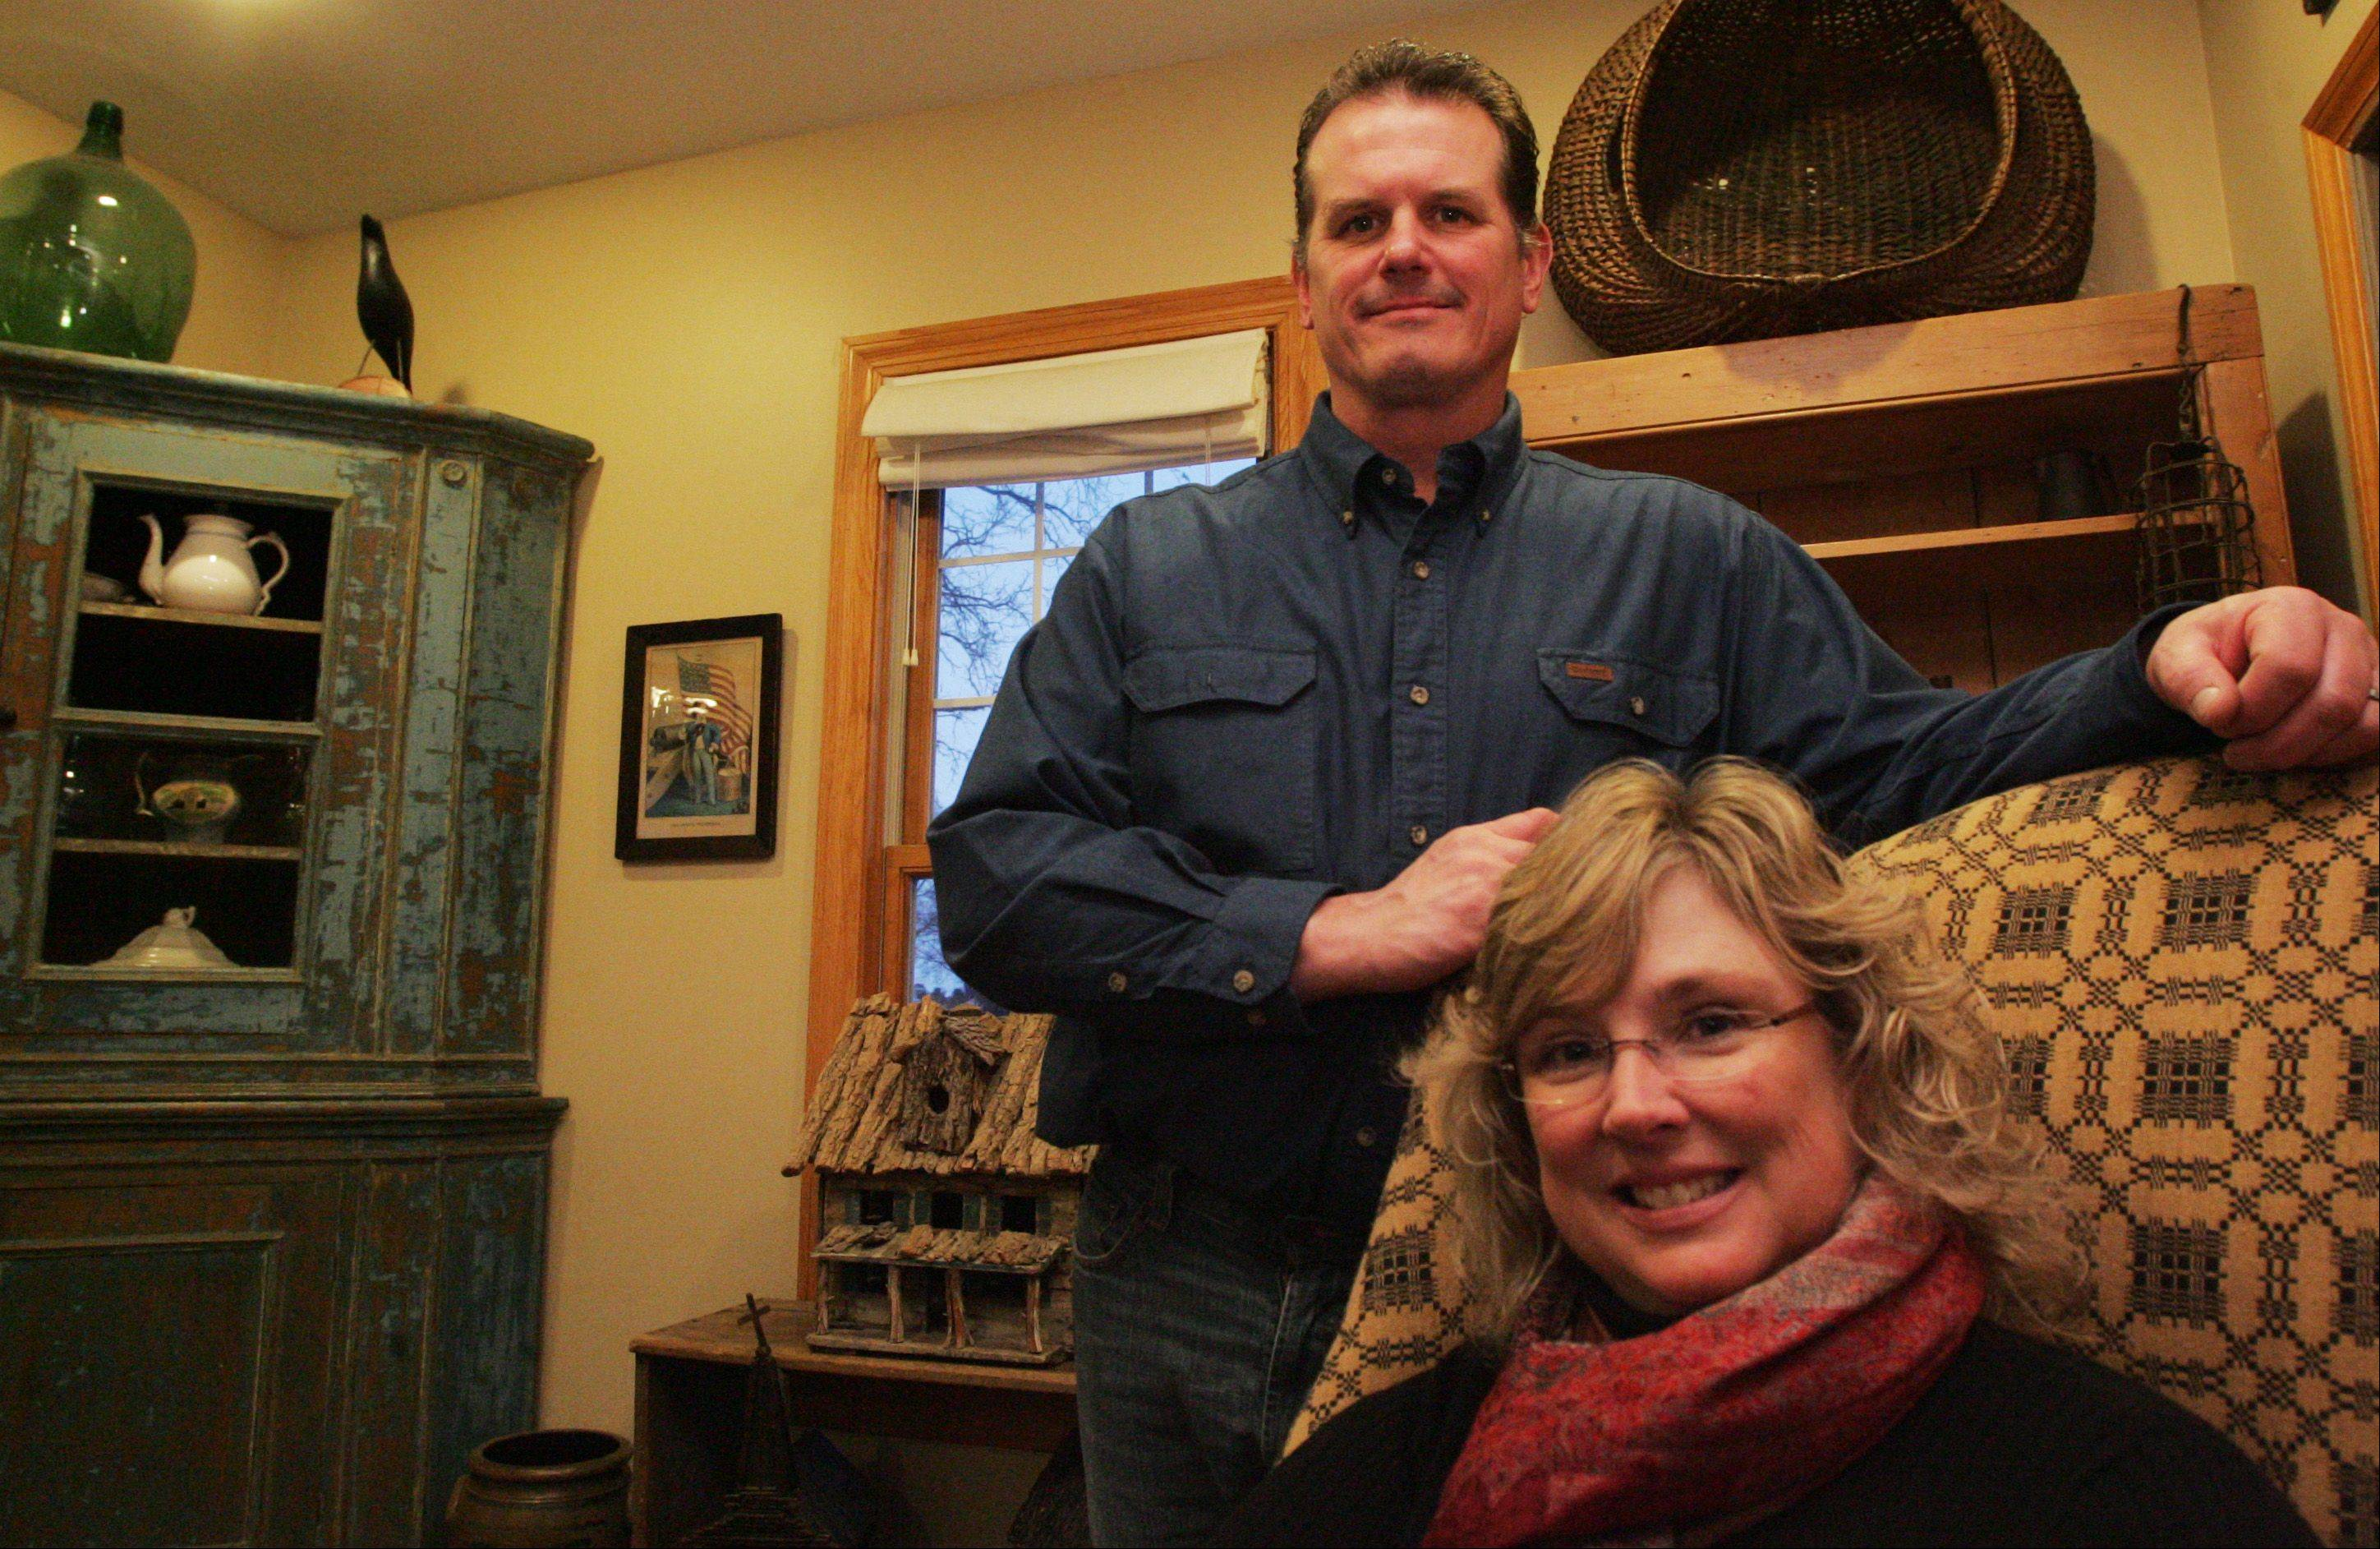 Jim and Maureen Little of Kingston have filled their home with antiques collected near and far. Maureen says she likes the worn/functional look of the pieces in her home because they aren't just nice to look at. They get used as well.